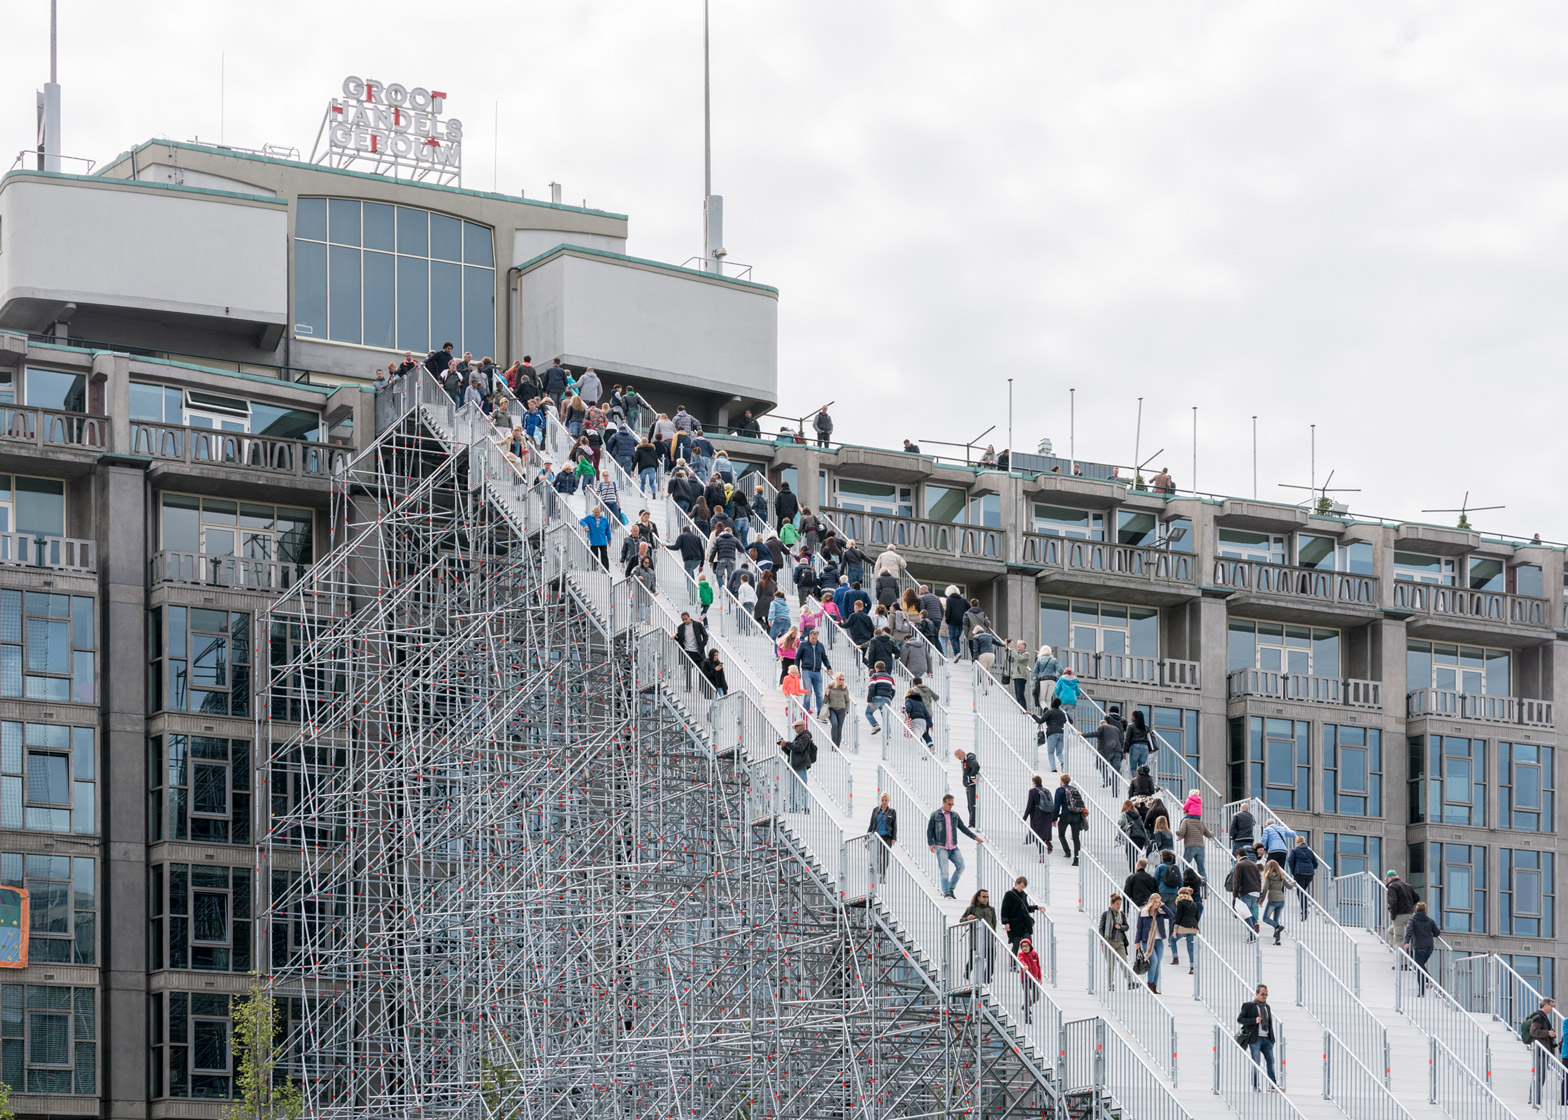 6 Of 6; MVRDV Completes The Stairs, A Giant Scaffolding Staircase In  Rotterdam City Centre